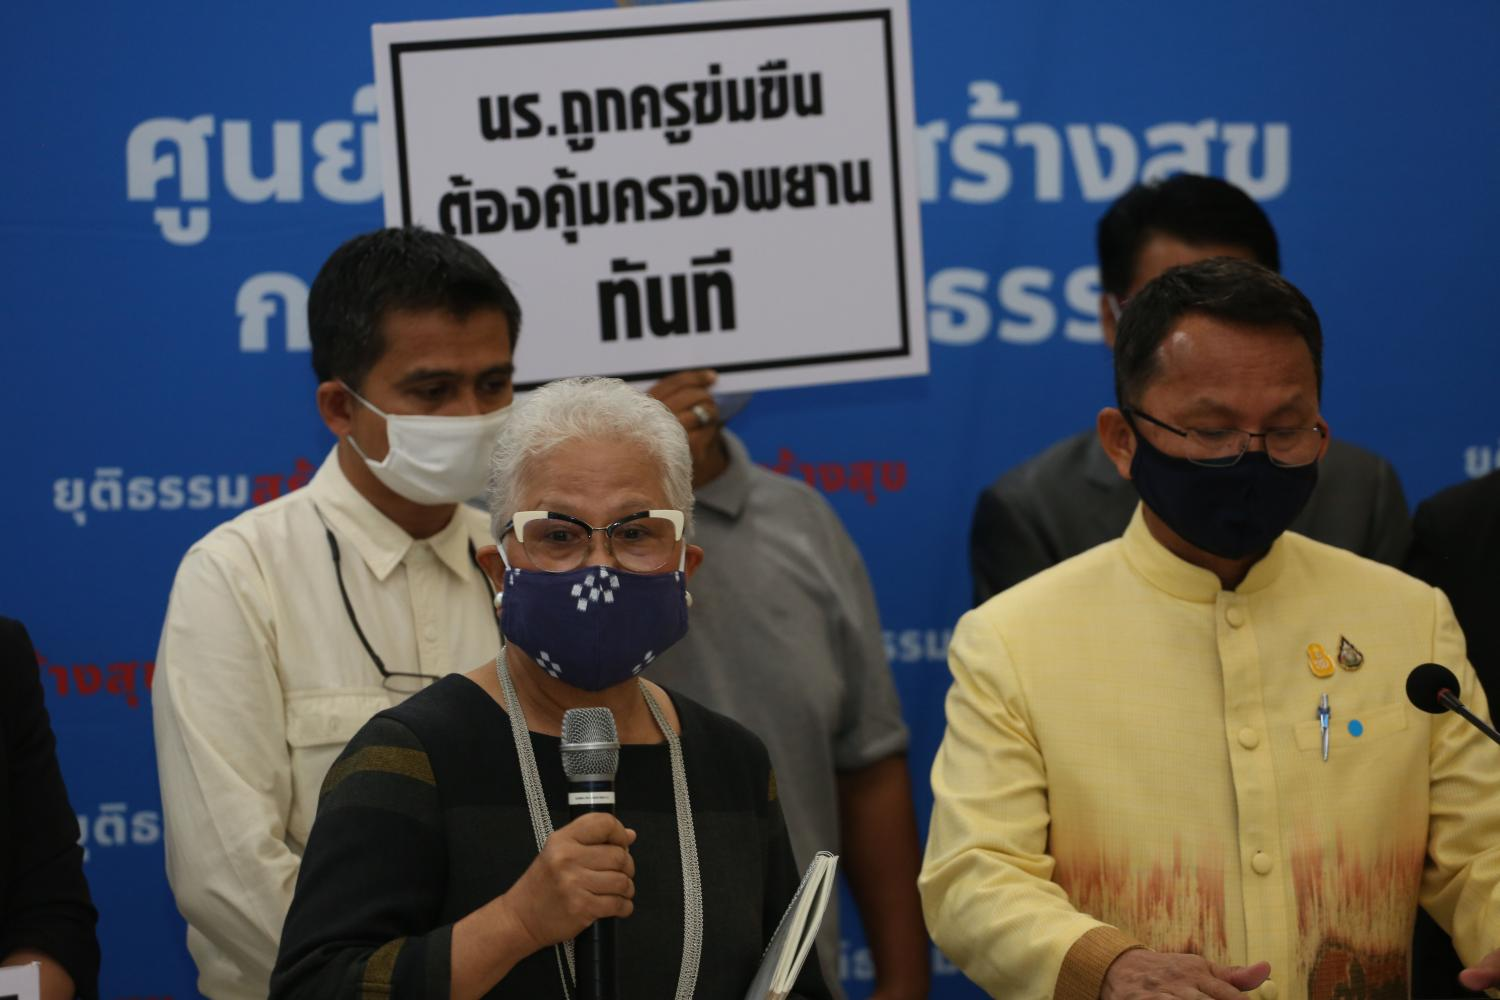 Rights activists led by child protection advocate Thicha Na Nakhon, left, hold placards denouncing the gang rape of schoolgirls by teachers and alumni in Mukdahan province.Varuth Hirunyatheb